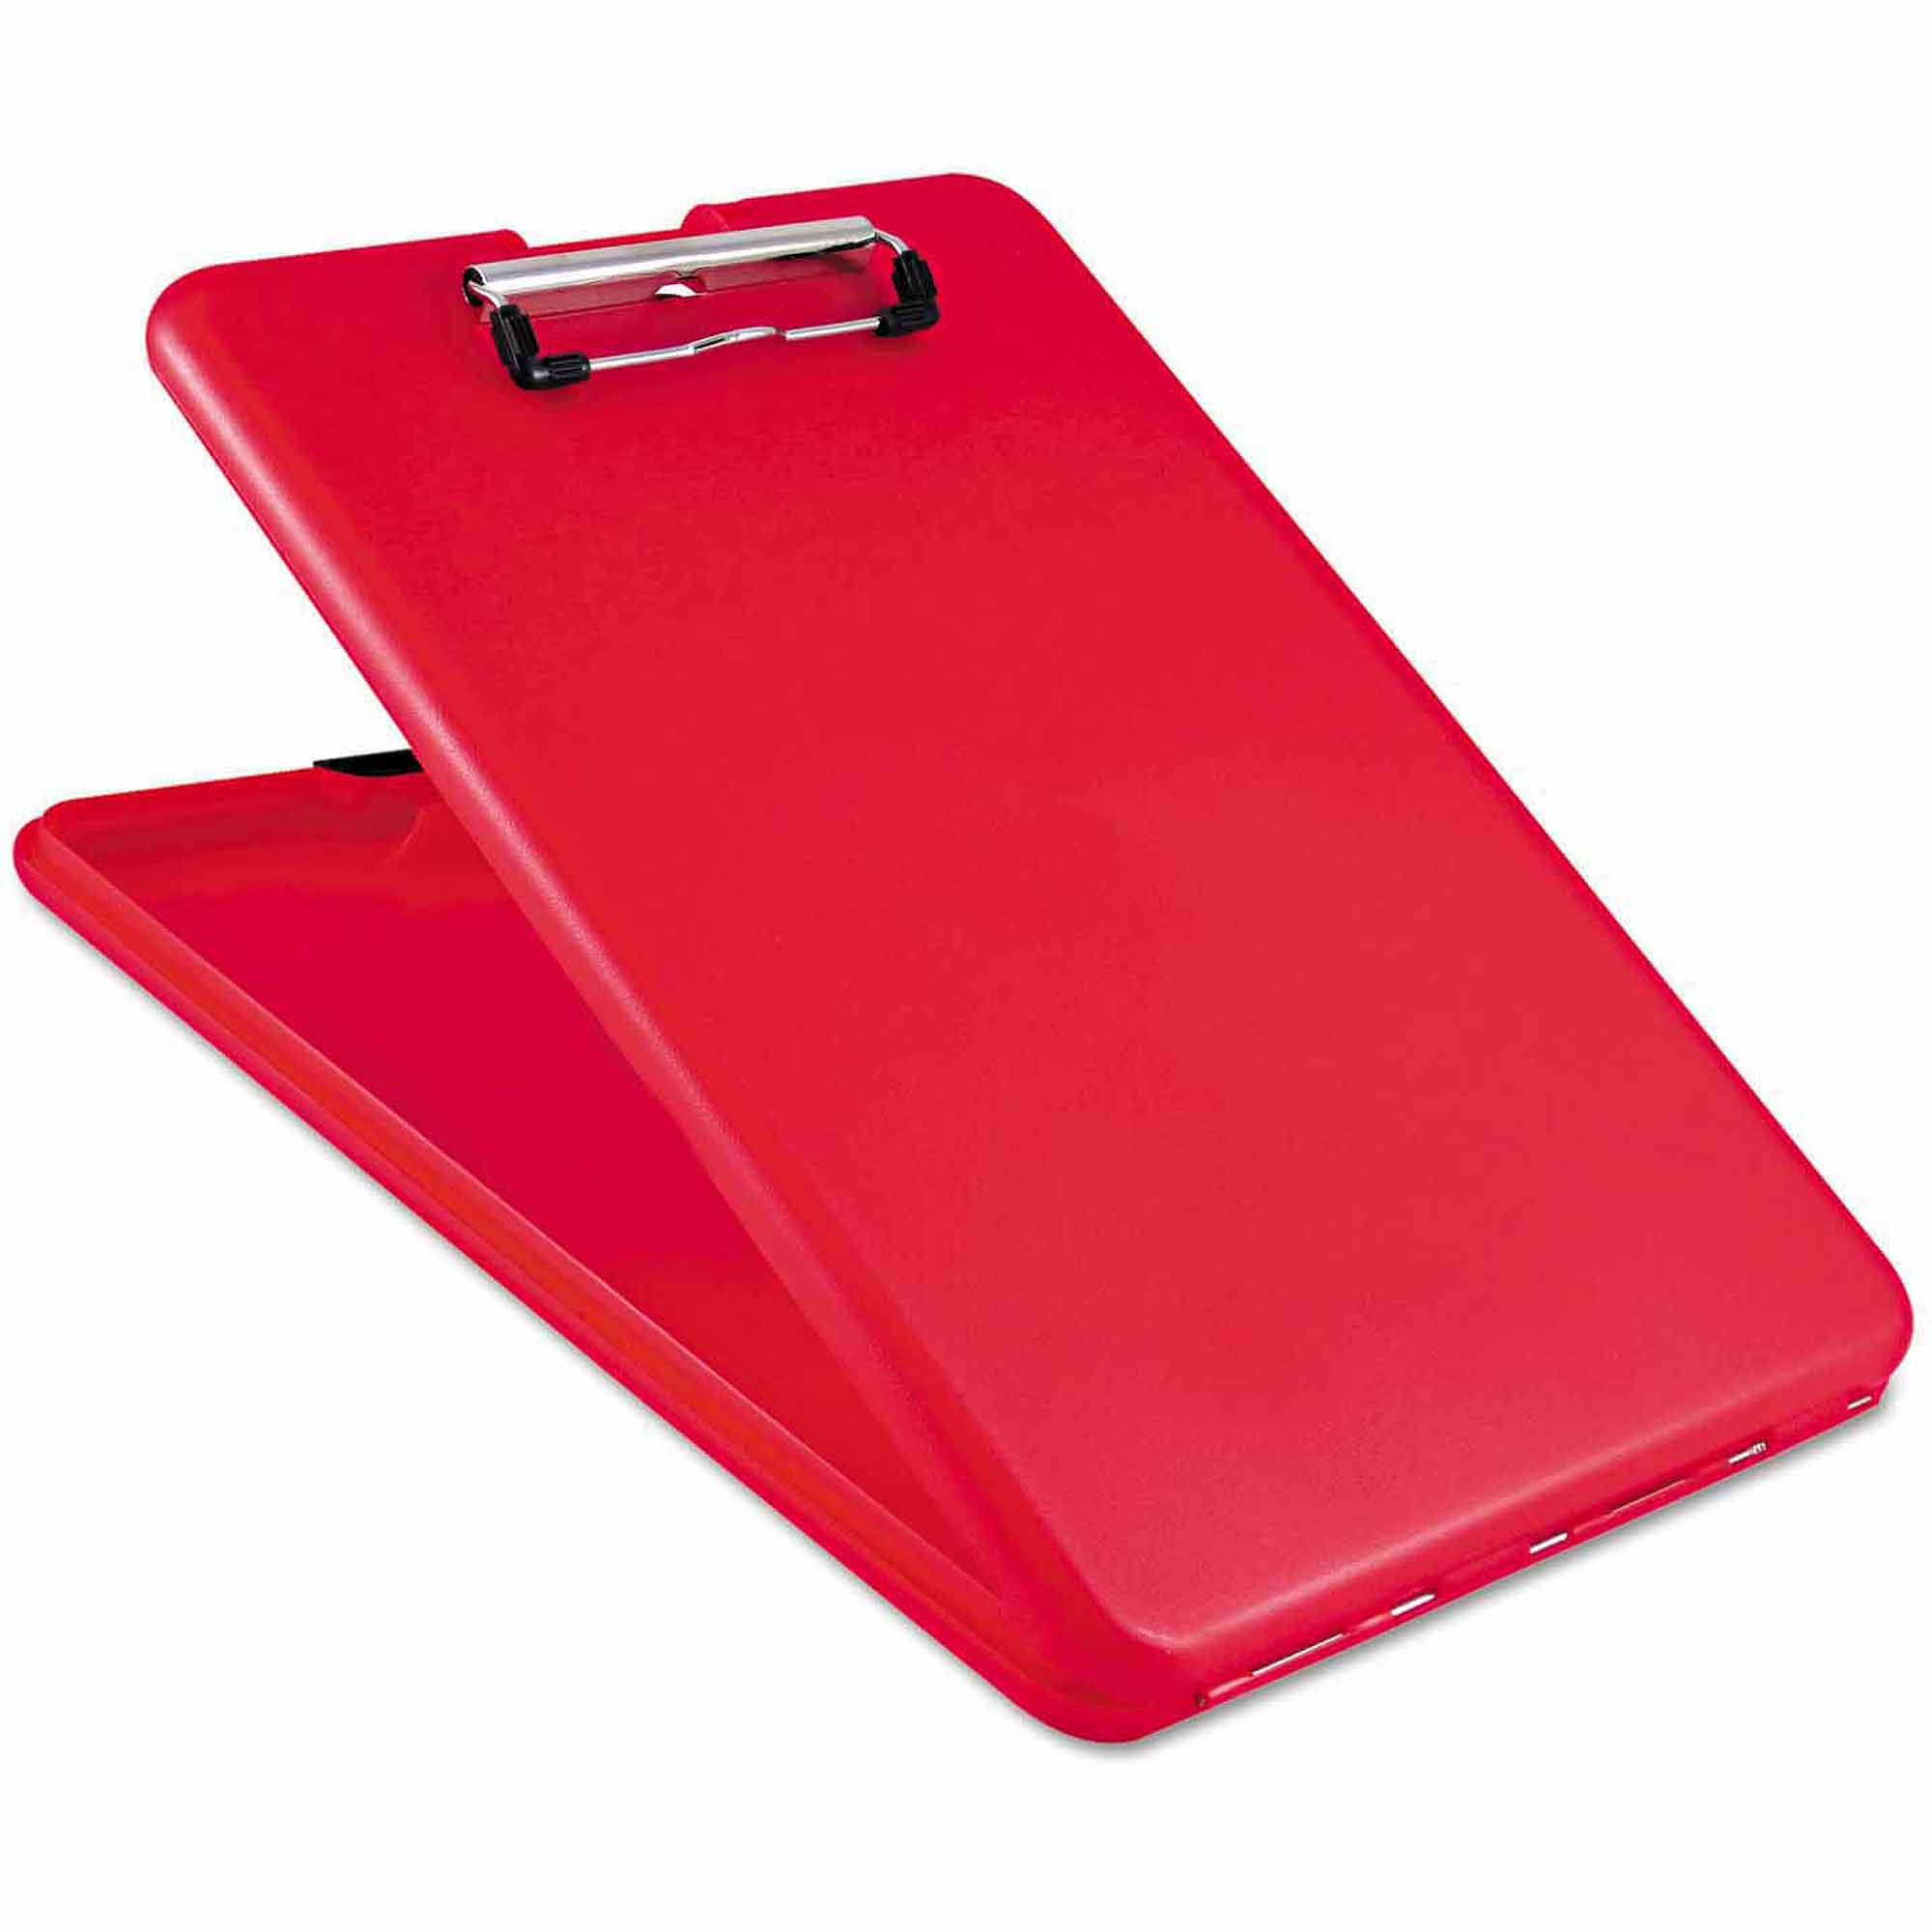 "Saunders SlimMate Storage Clipboard, 1/2"" Capacity, Holds 8 1/2w x 12h, Red"